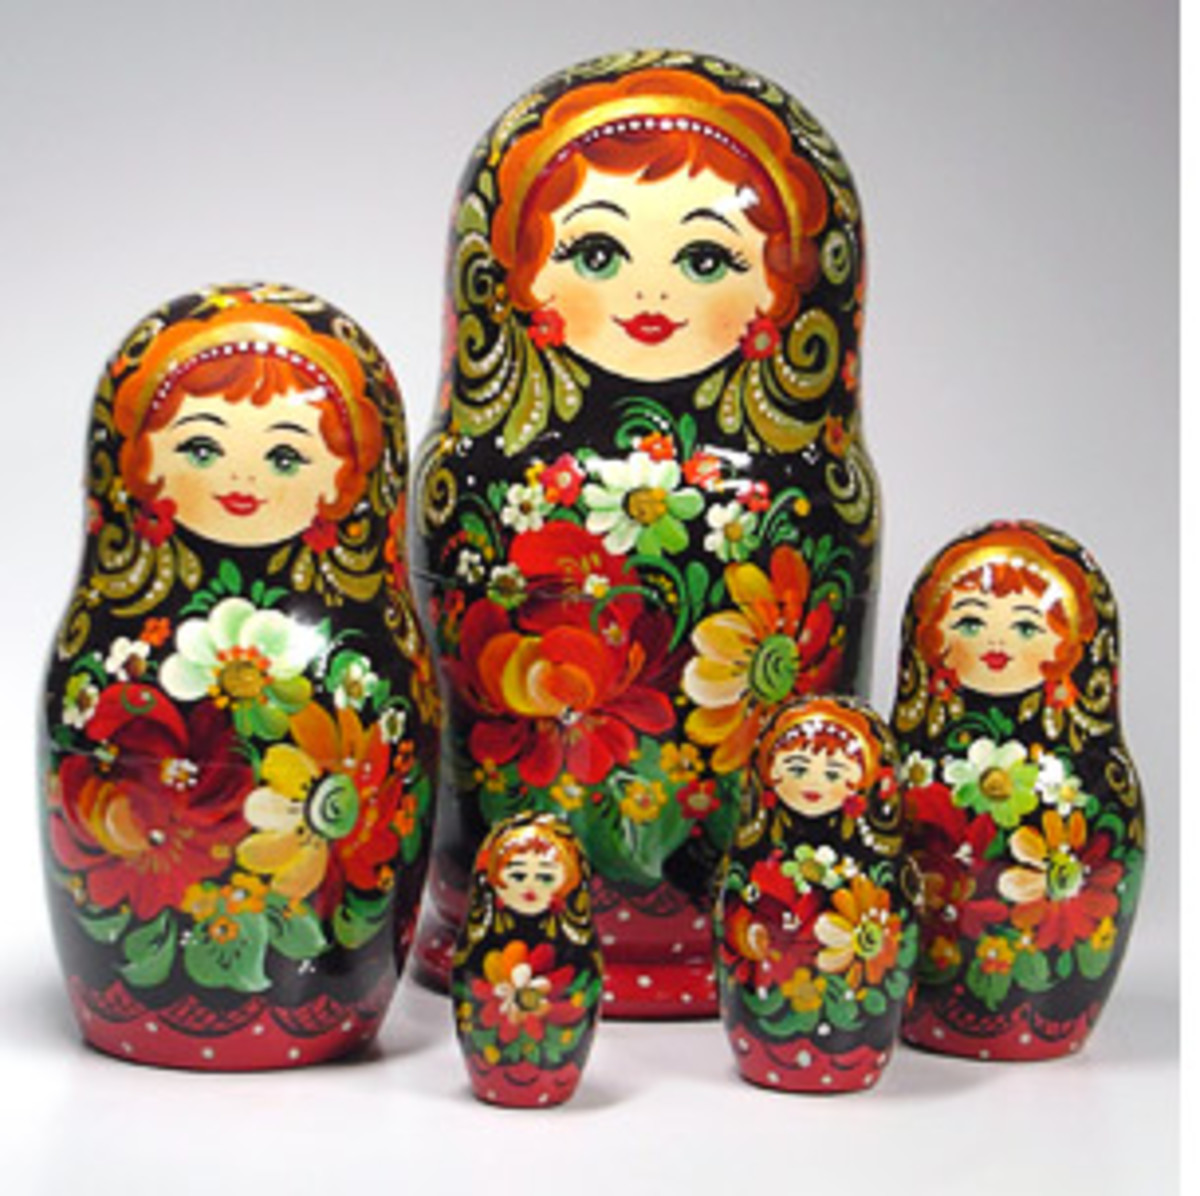 Collecting Russian Nesting Dolls